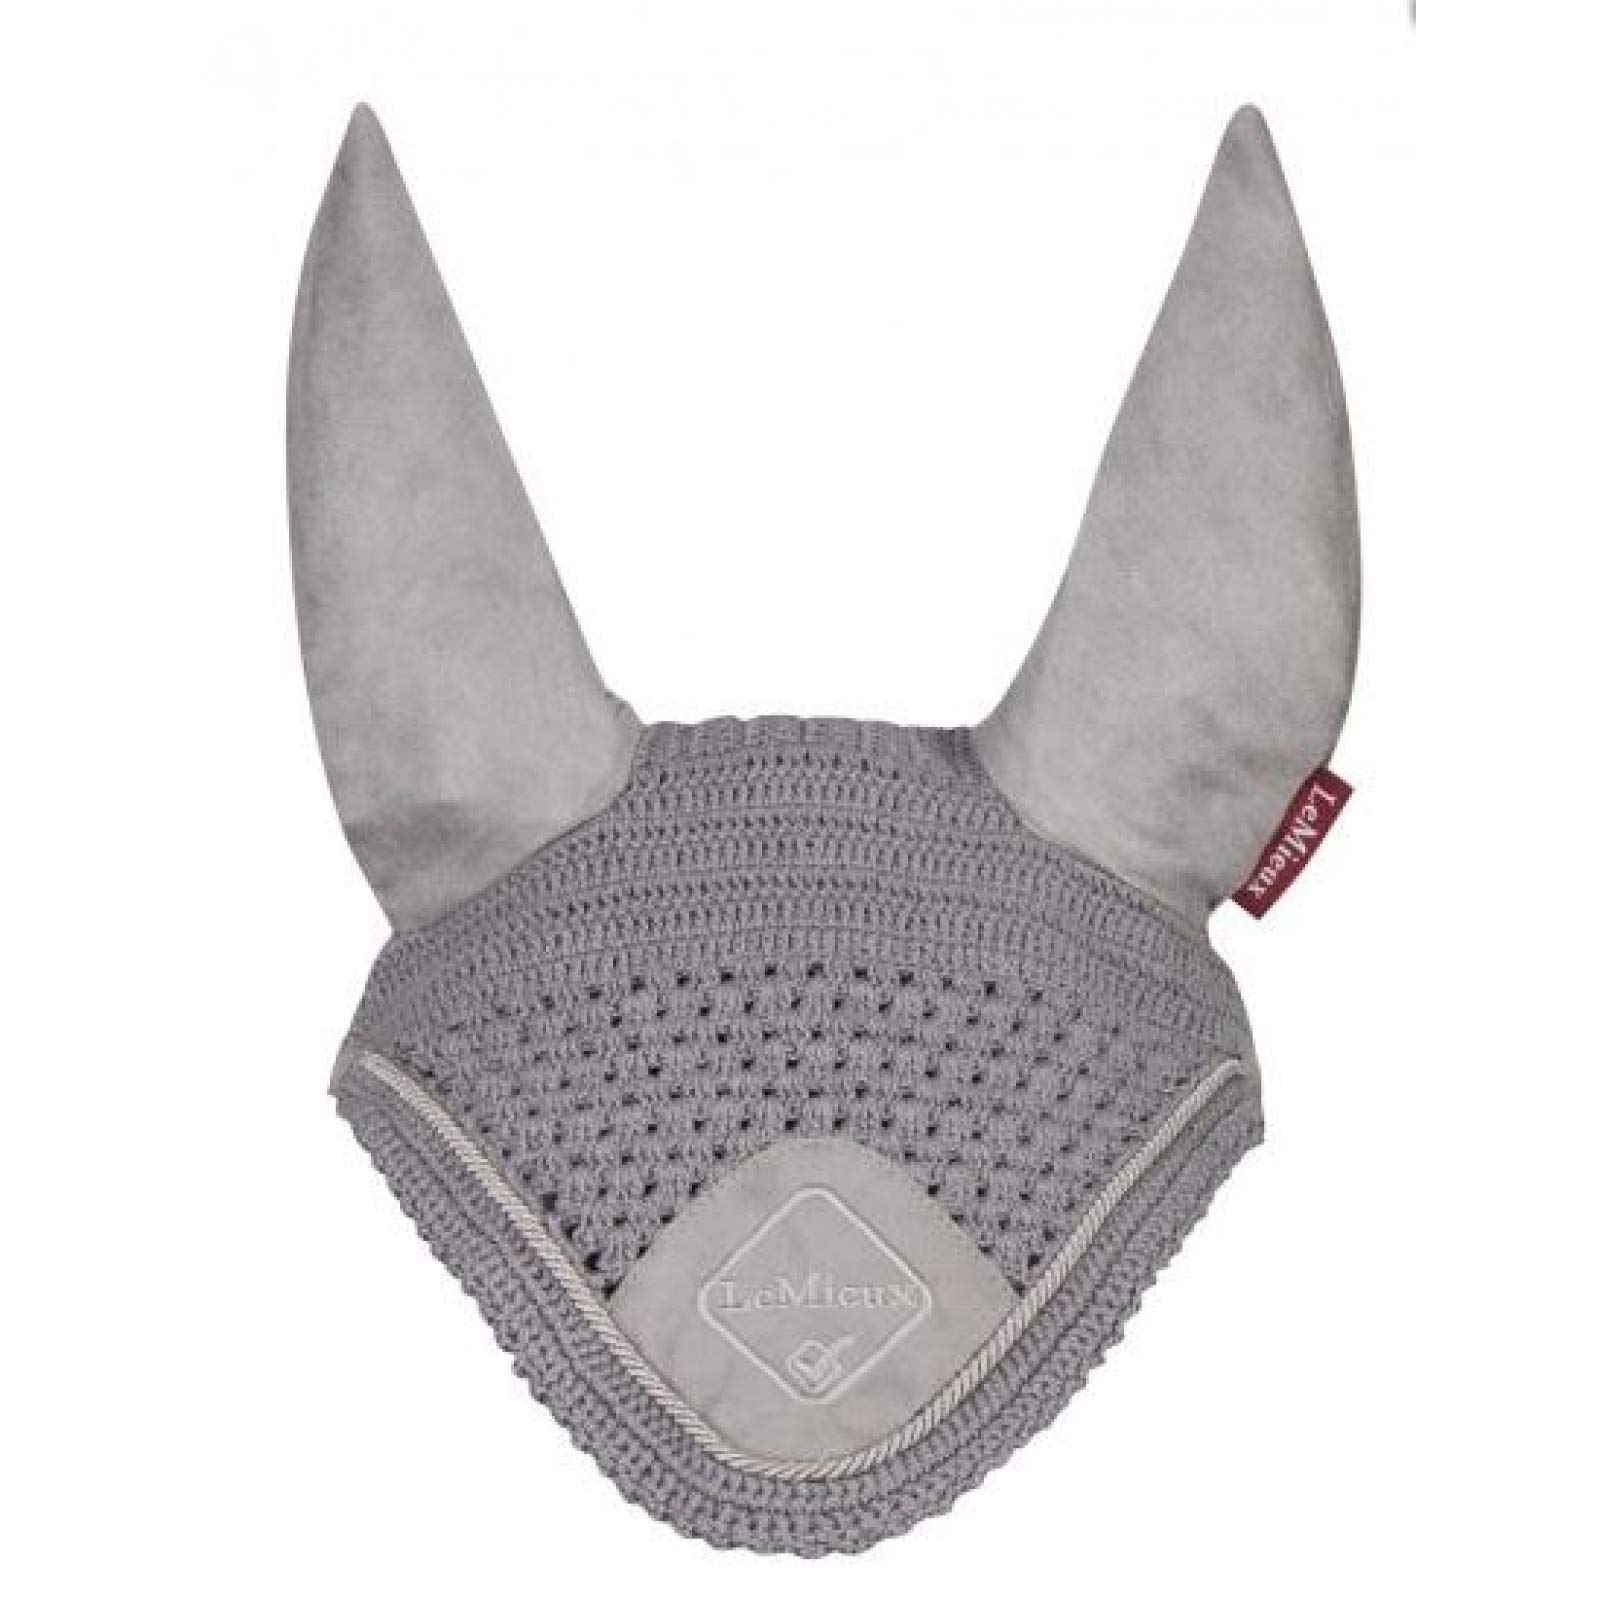 Lemieux Vogue Fly Hoods - Grey/grey Braid - Medium by LeMieux